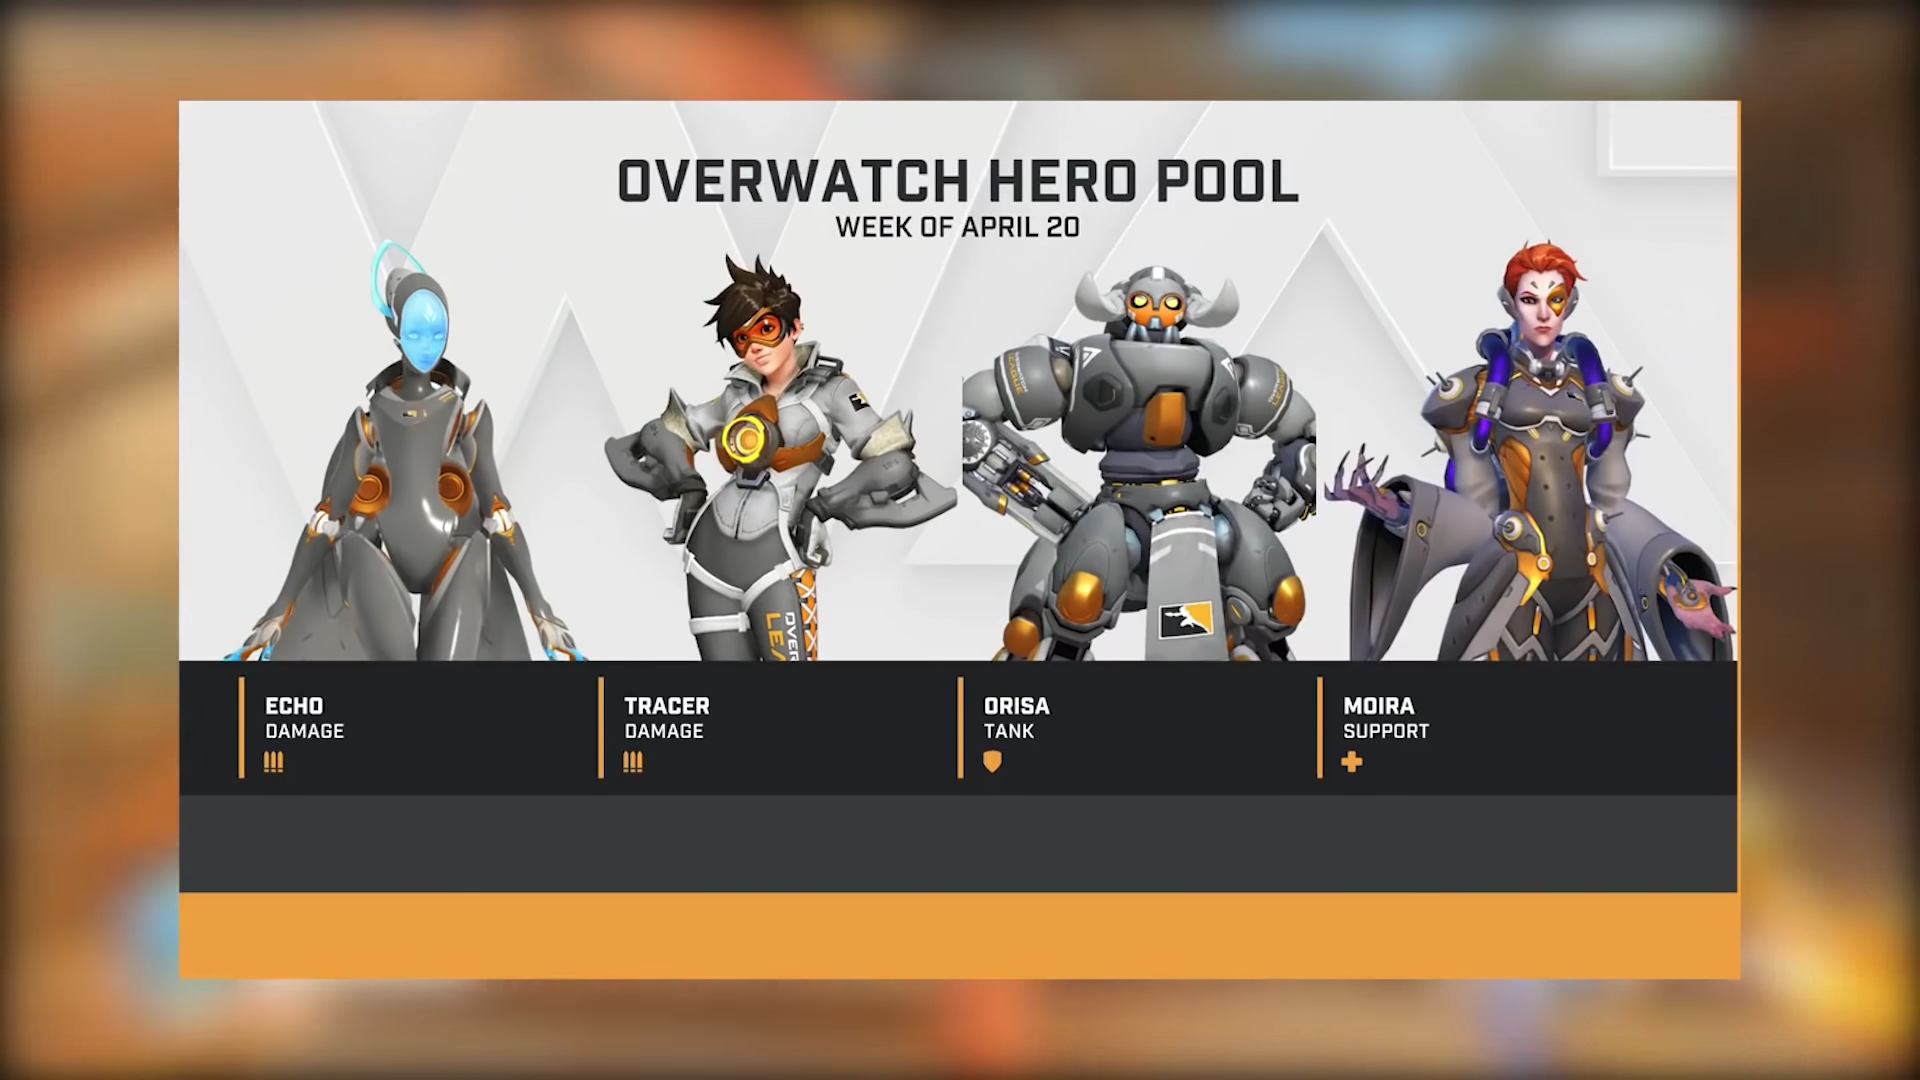 Overwatch Lead Designer Jeff Kaplan Directly Responds To Hero Pool Concerns Blizzard Overwatch Overwatchleague Pcmac Pl Overwatch Hero Video Game News